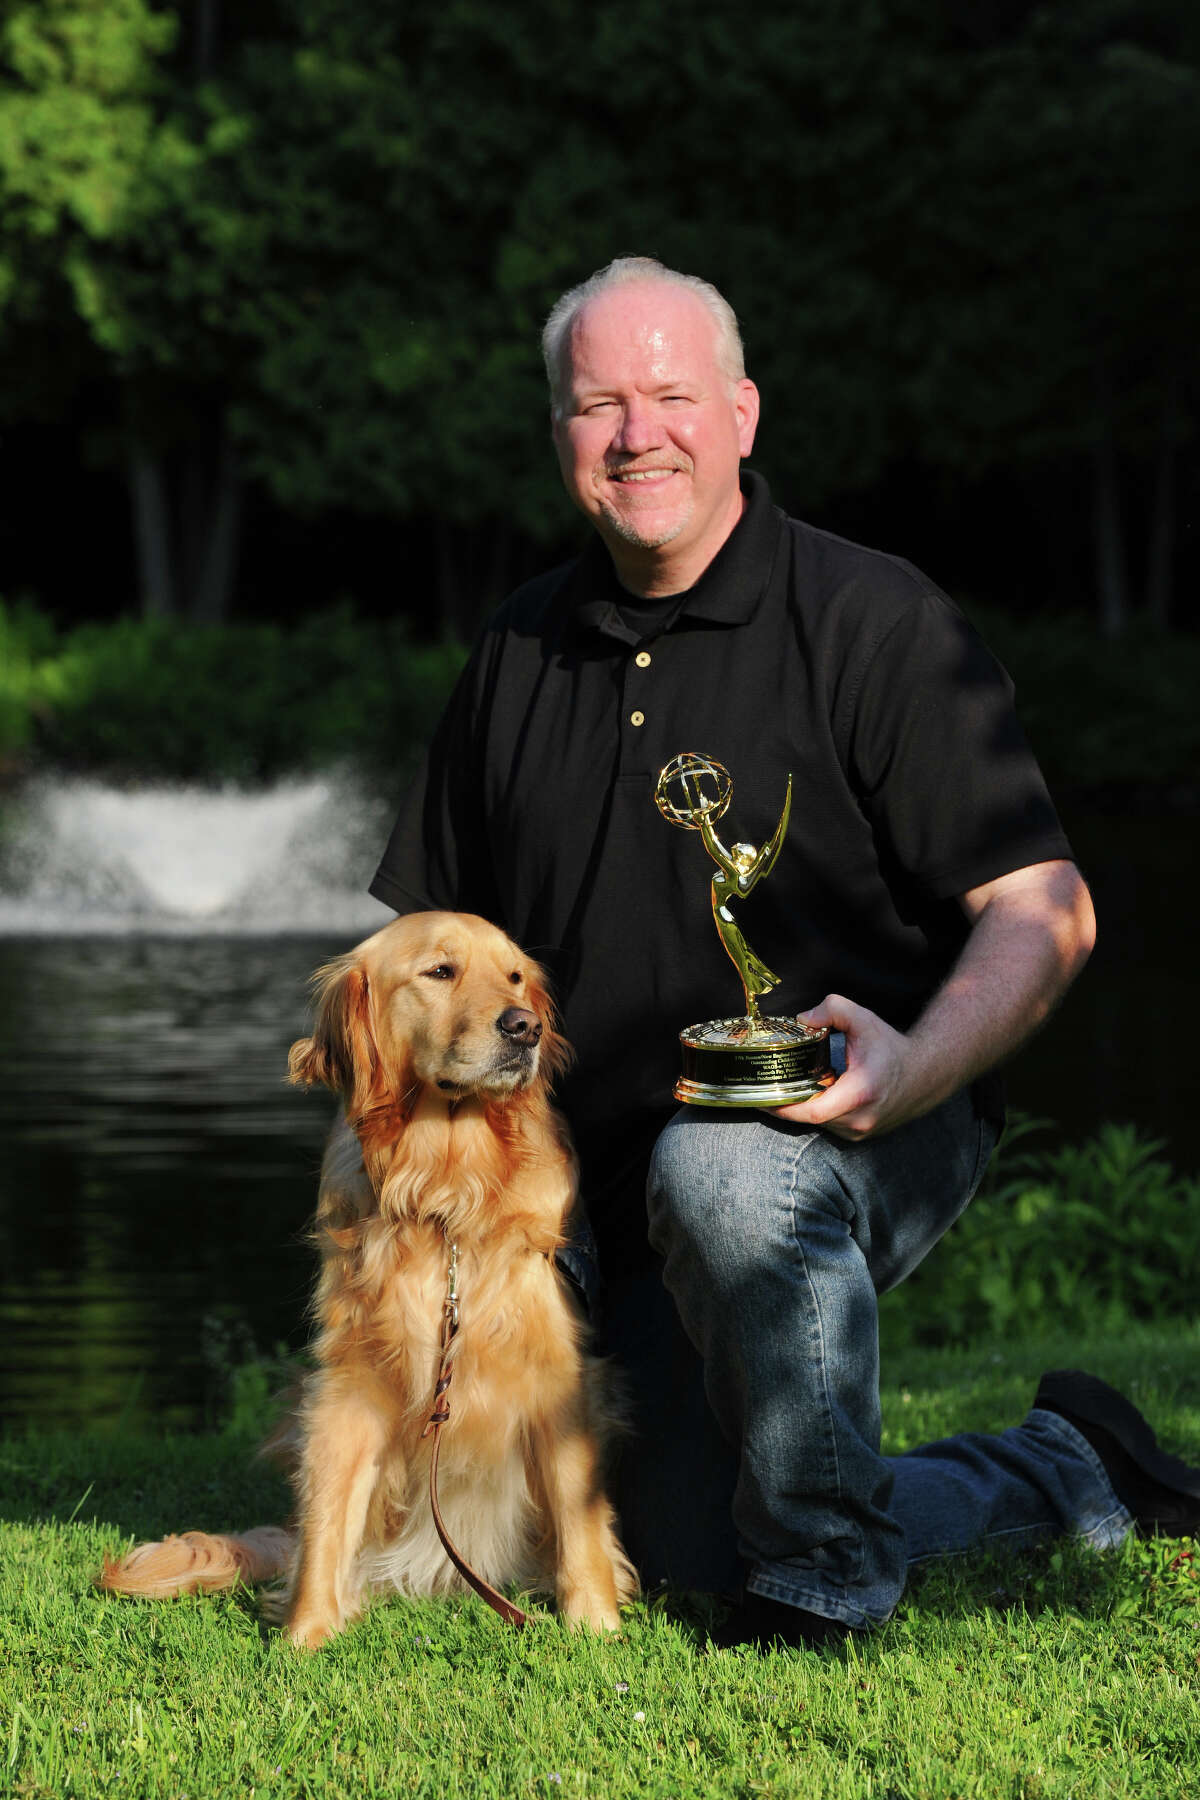 Ken Fay poses with comfort dog Maggie and his Emmy Award in Newtown, Conn. July 18, 2014. Fay recently received the Emmy for his film